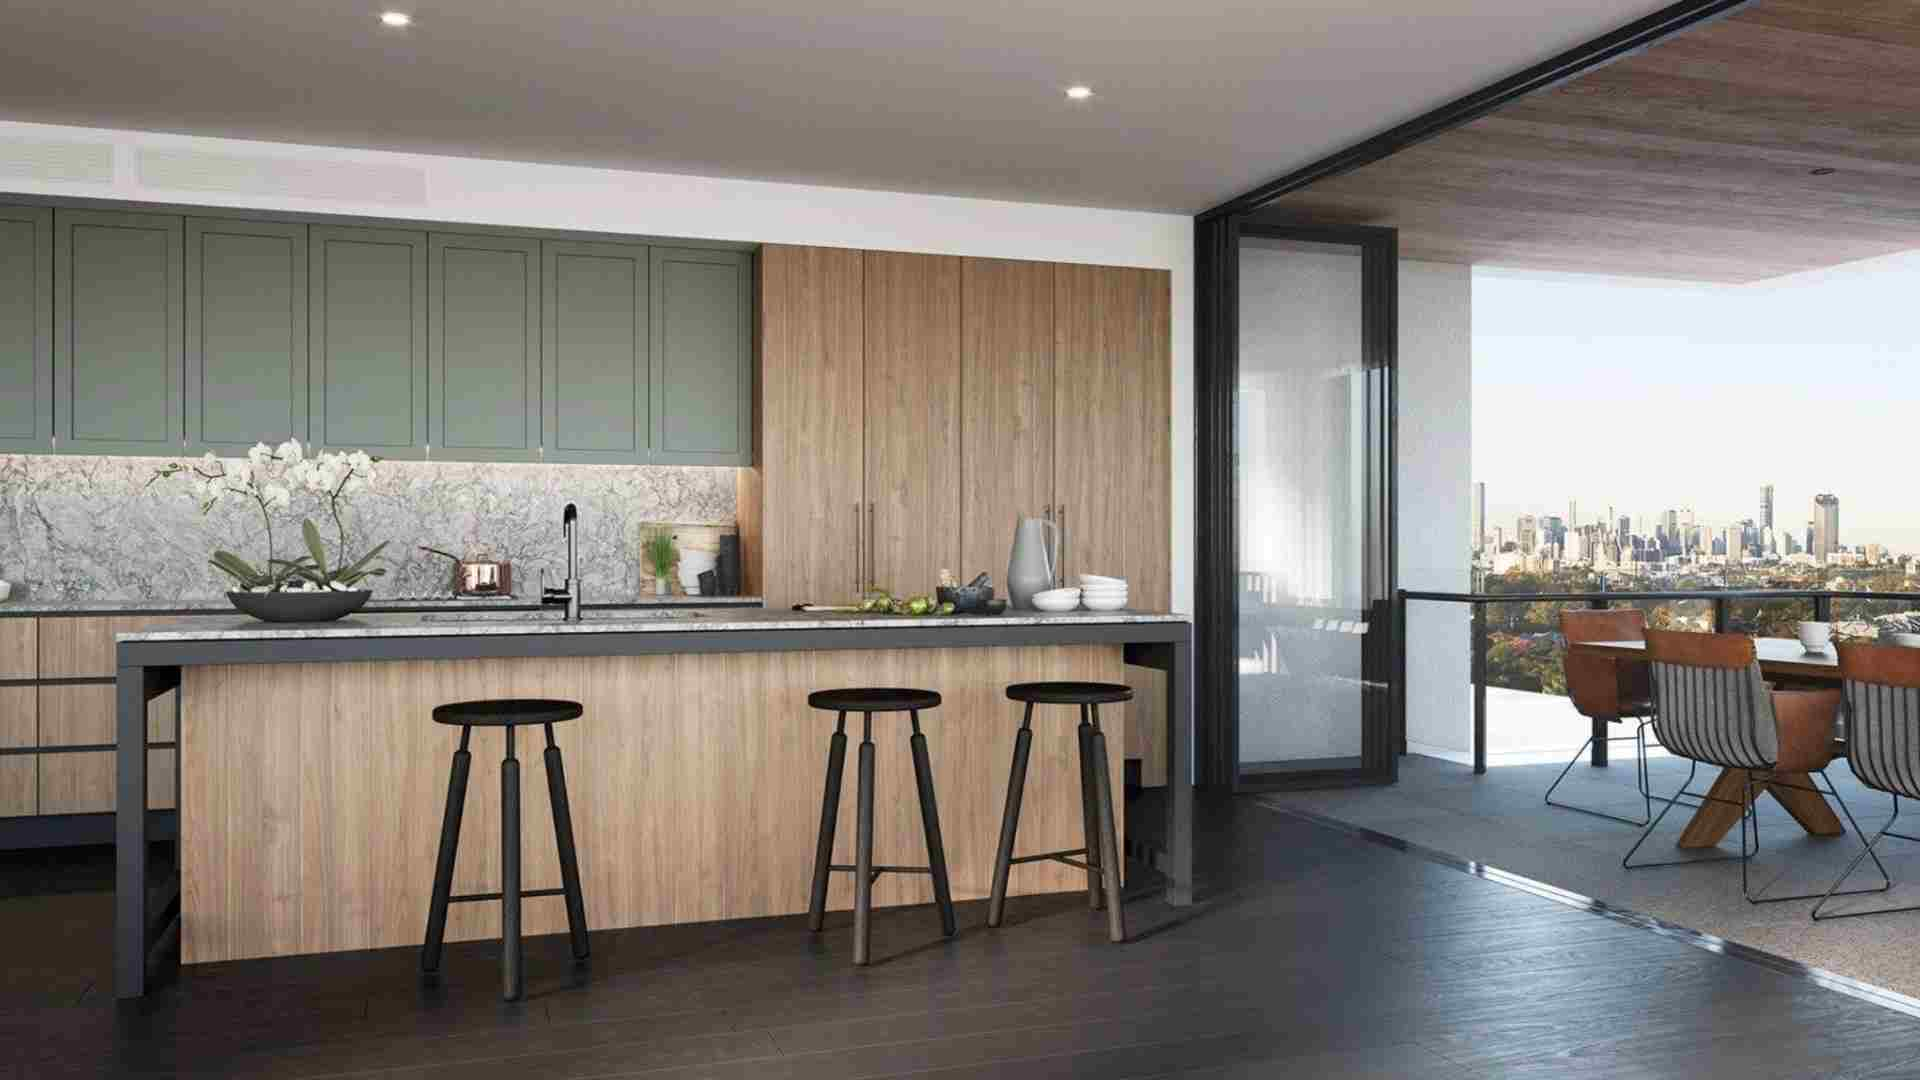 wood and sage kitchen cabinets, black bar stool, open kitchen to balcony